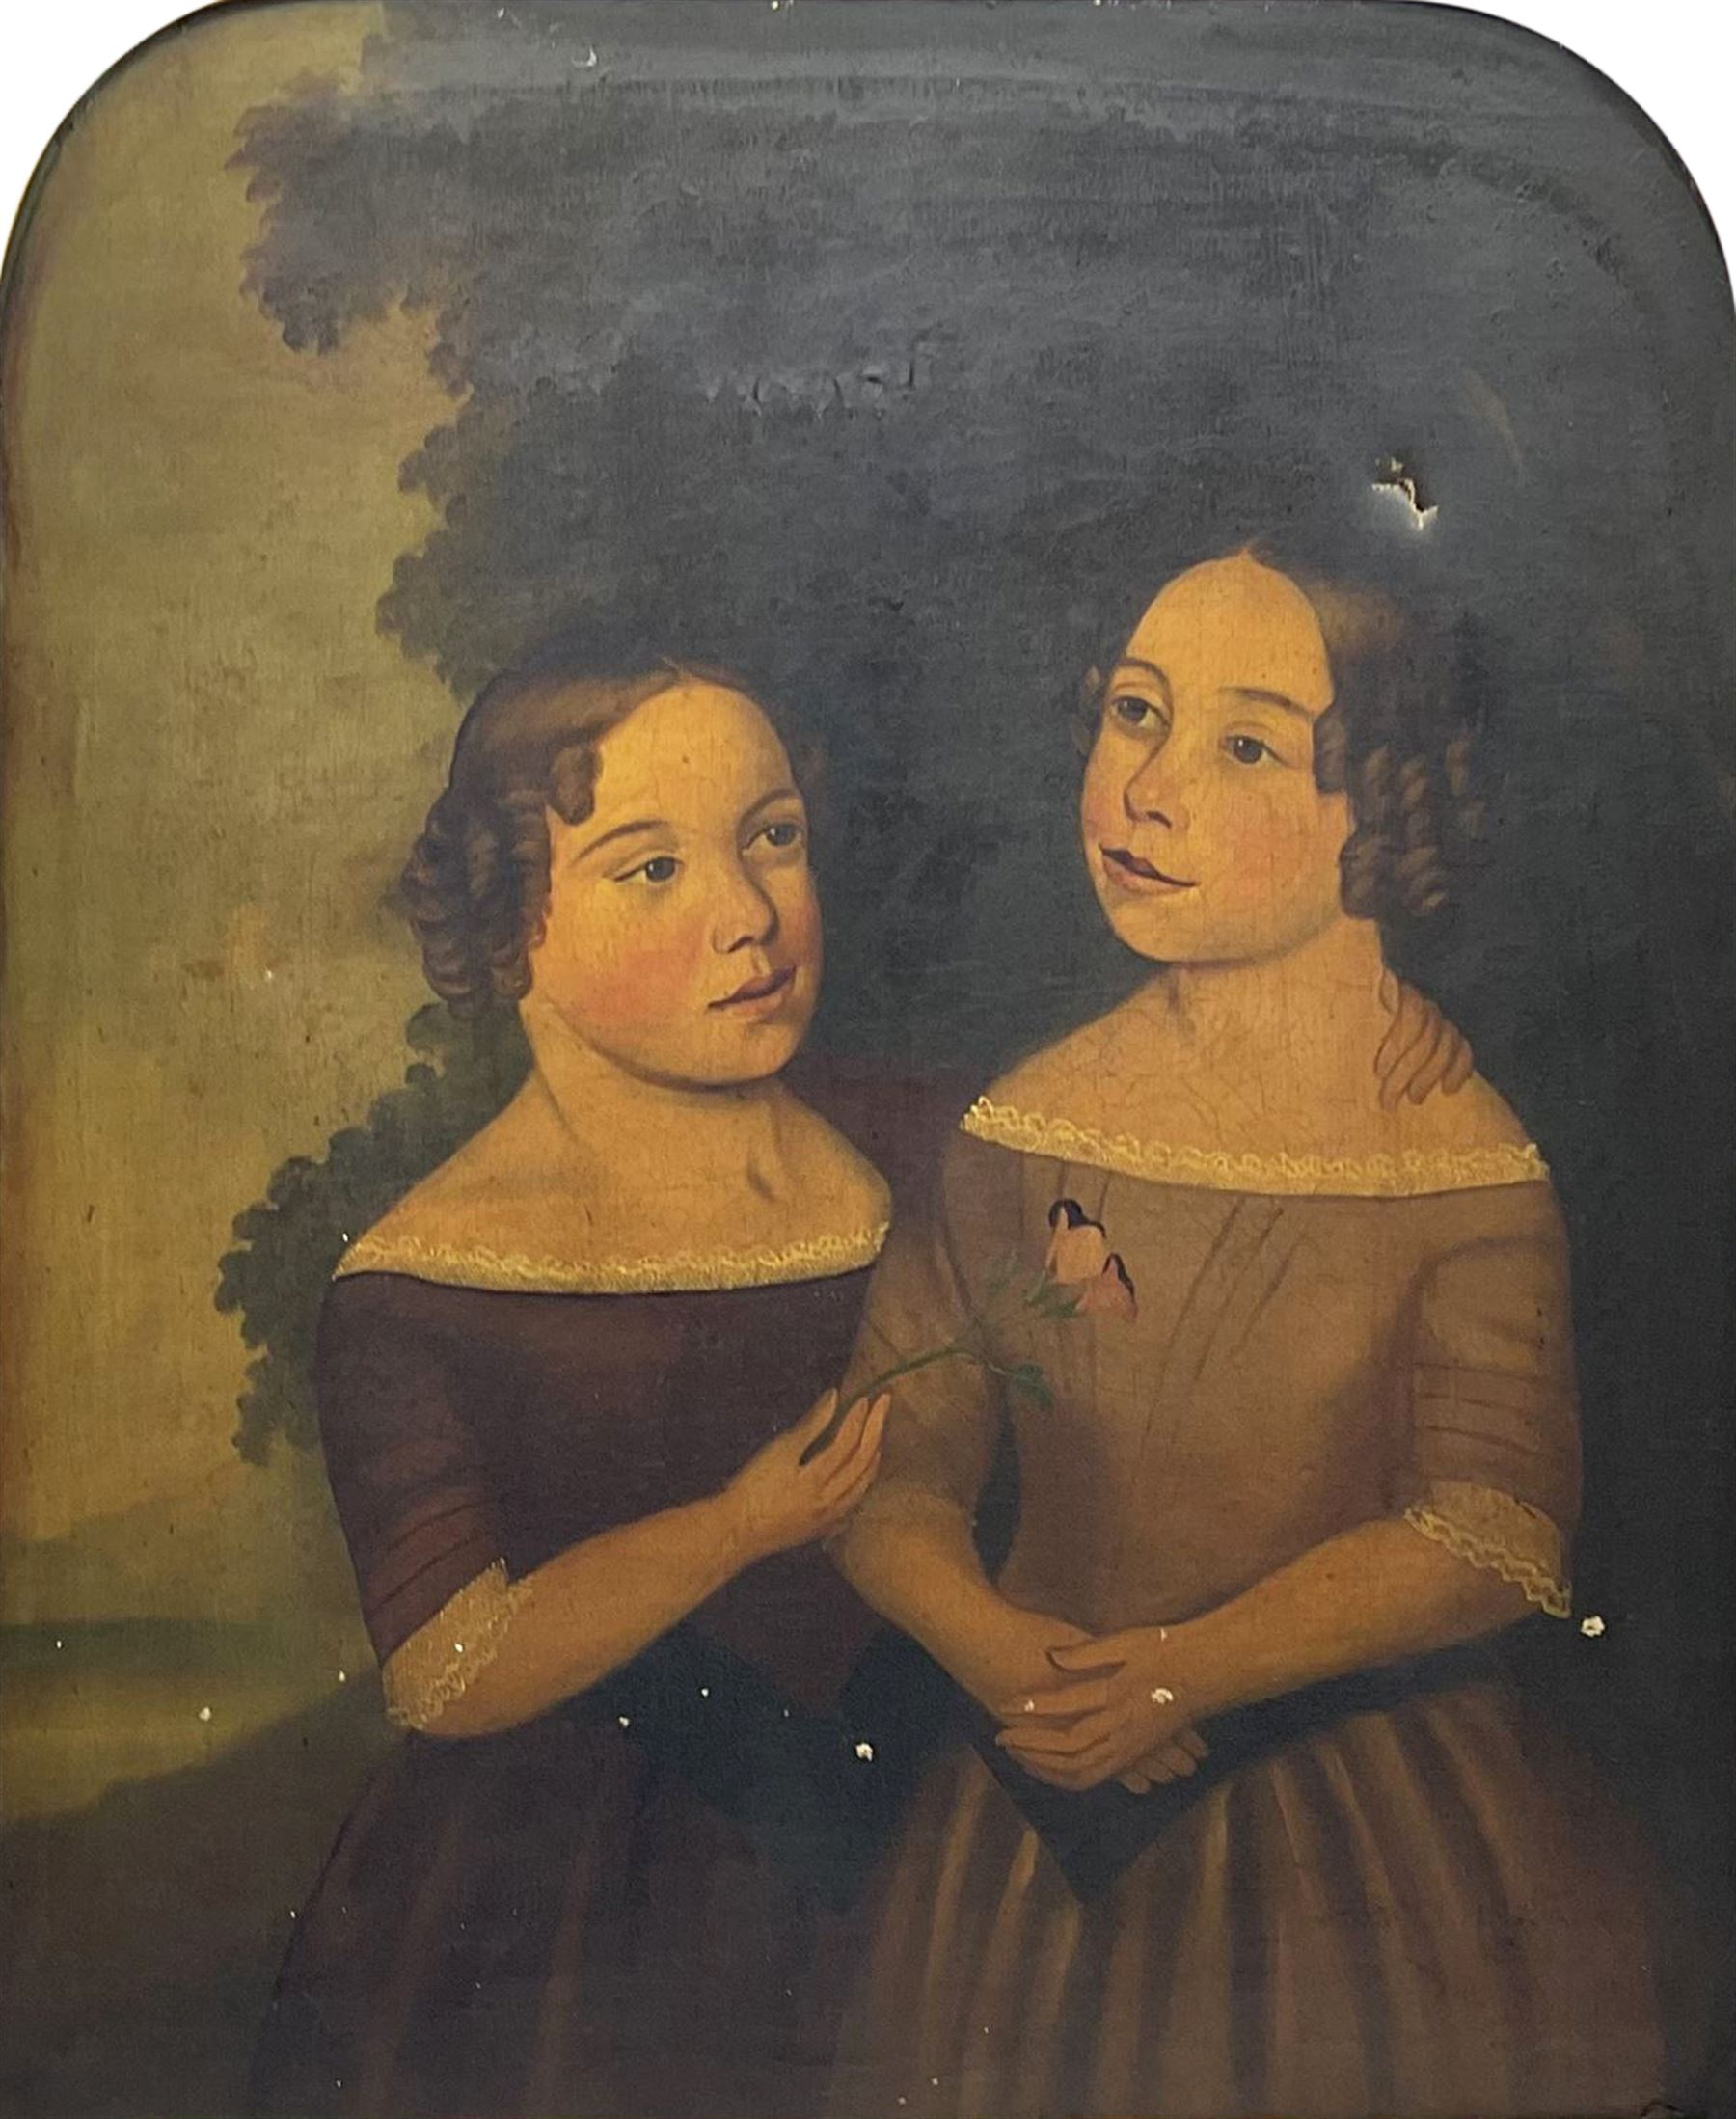 English Primitive School (Early/mid 19th century): Portrait of Two Girls